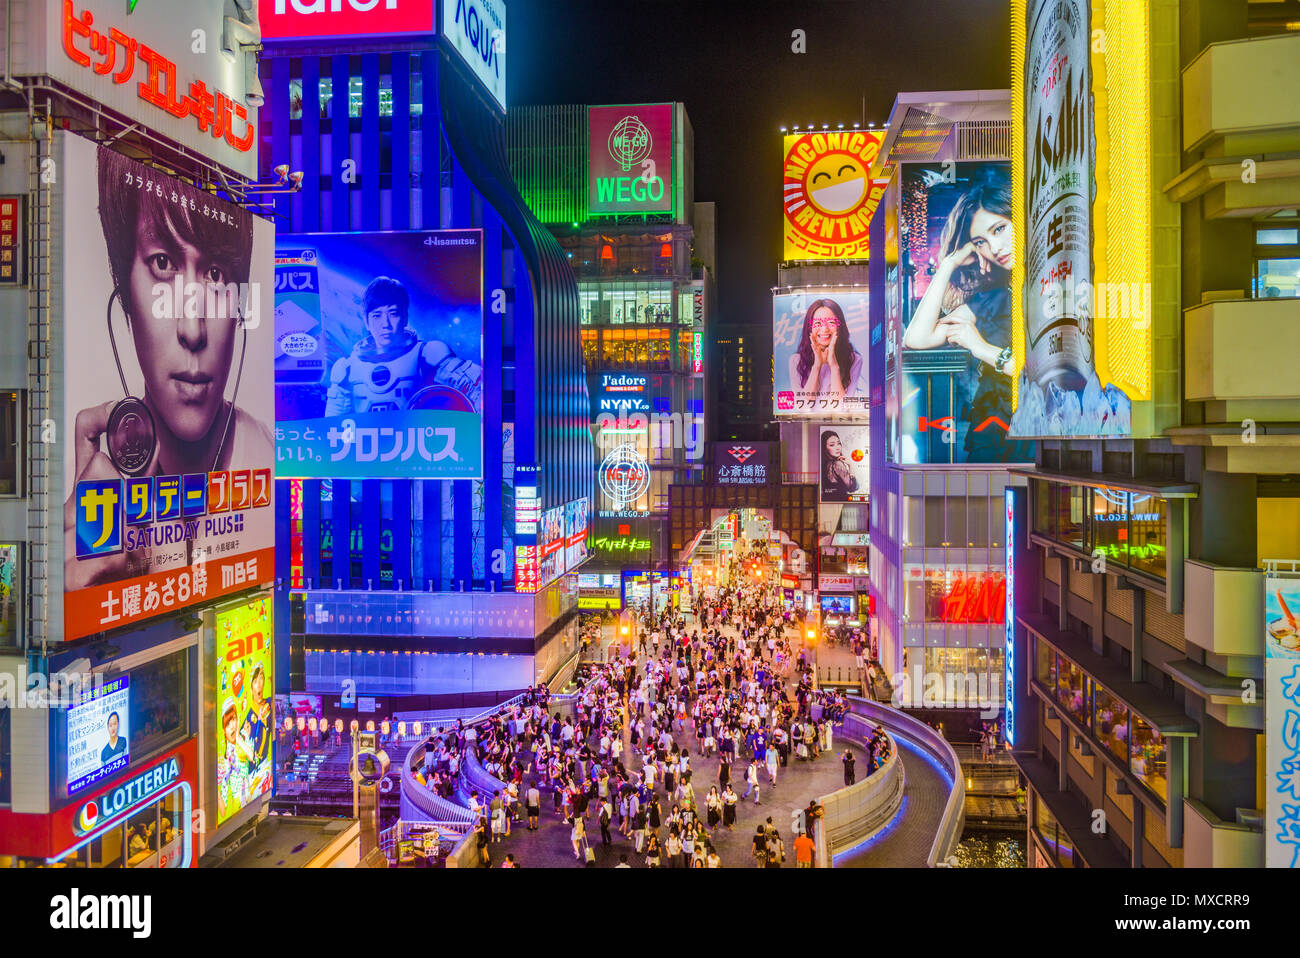 OSAKA, JAPAN - AUGUST 16, 2015: Pedestrians walk below billboards in the Dotonbori district. The district is a popular tourist attraction. - Stock Image